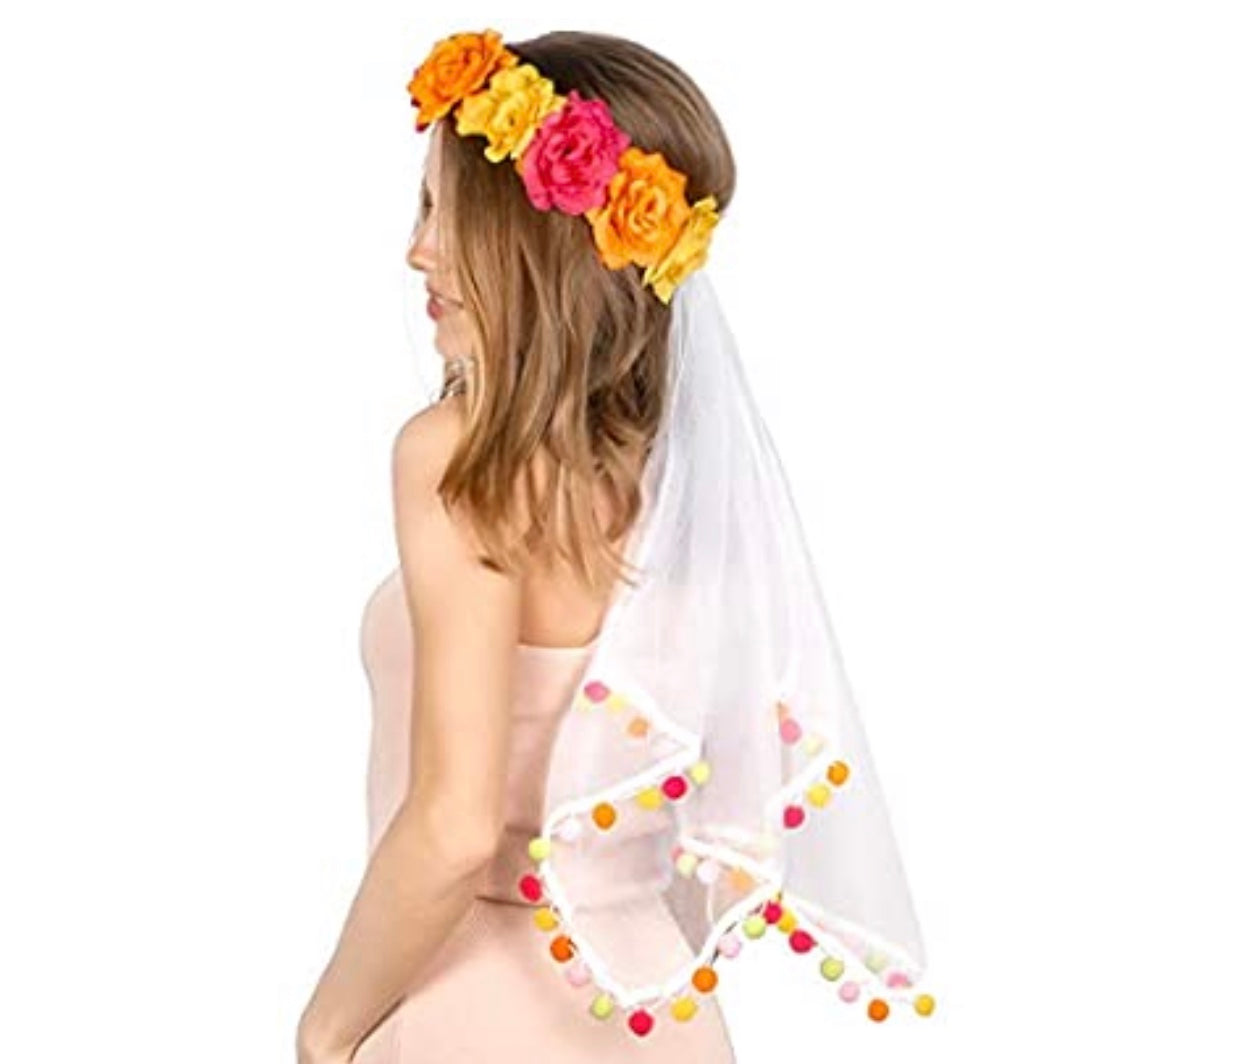 Tropical Veil for the Bride